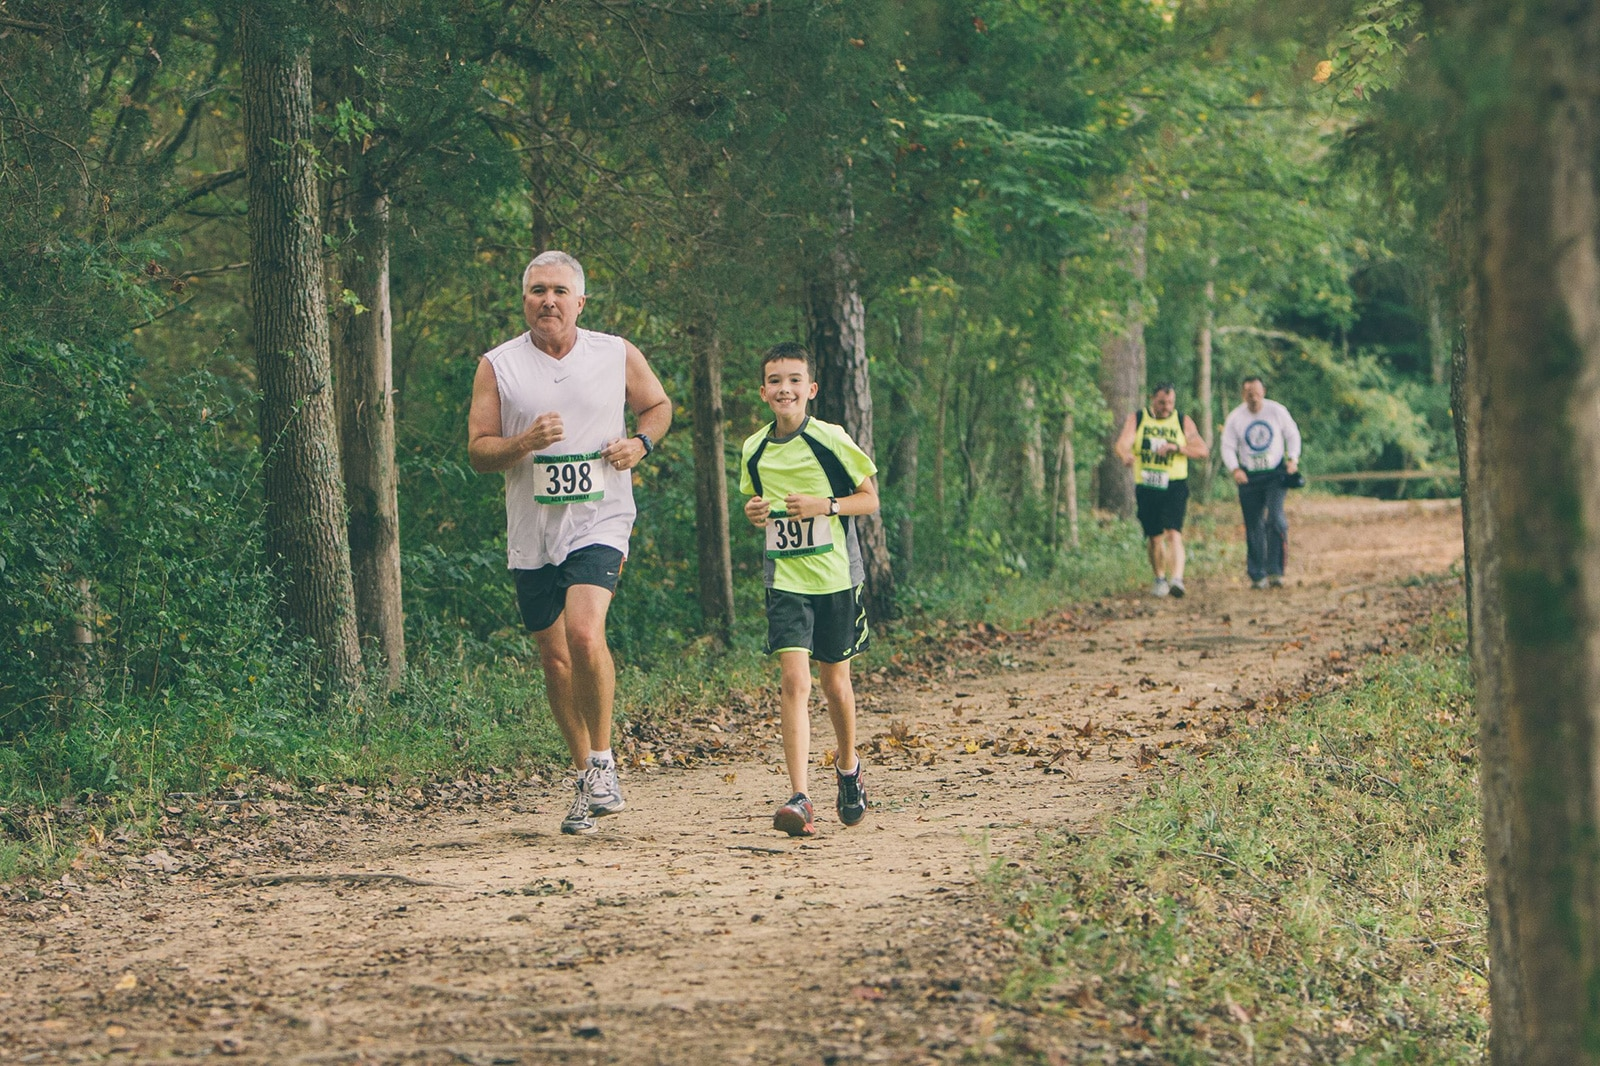 Father and son running a race in the woods